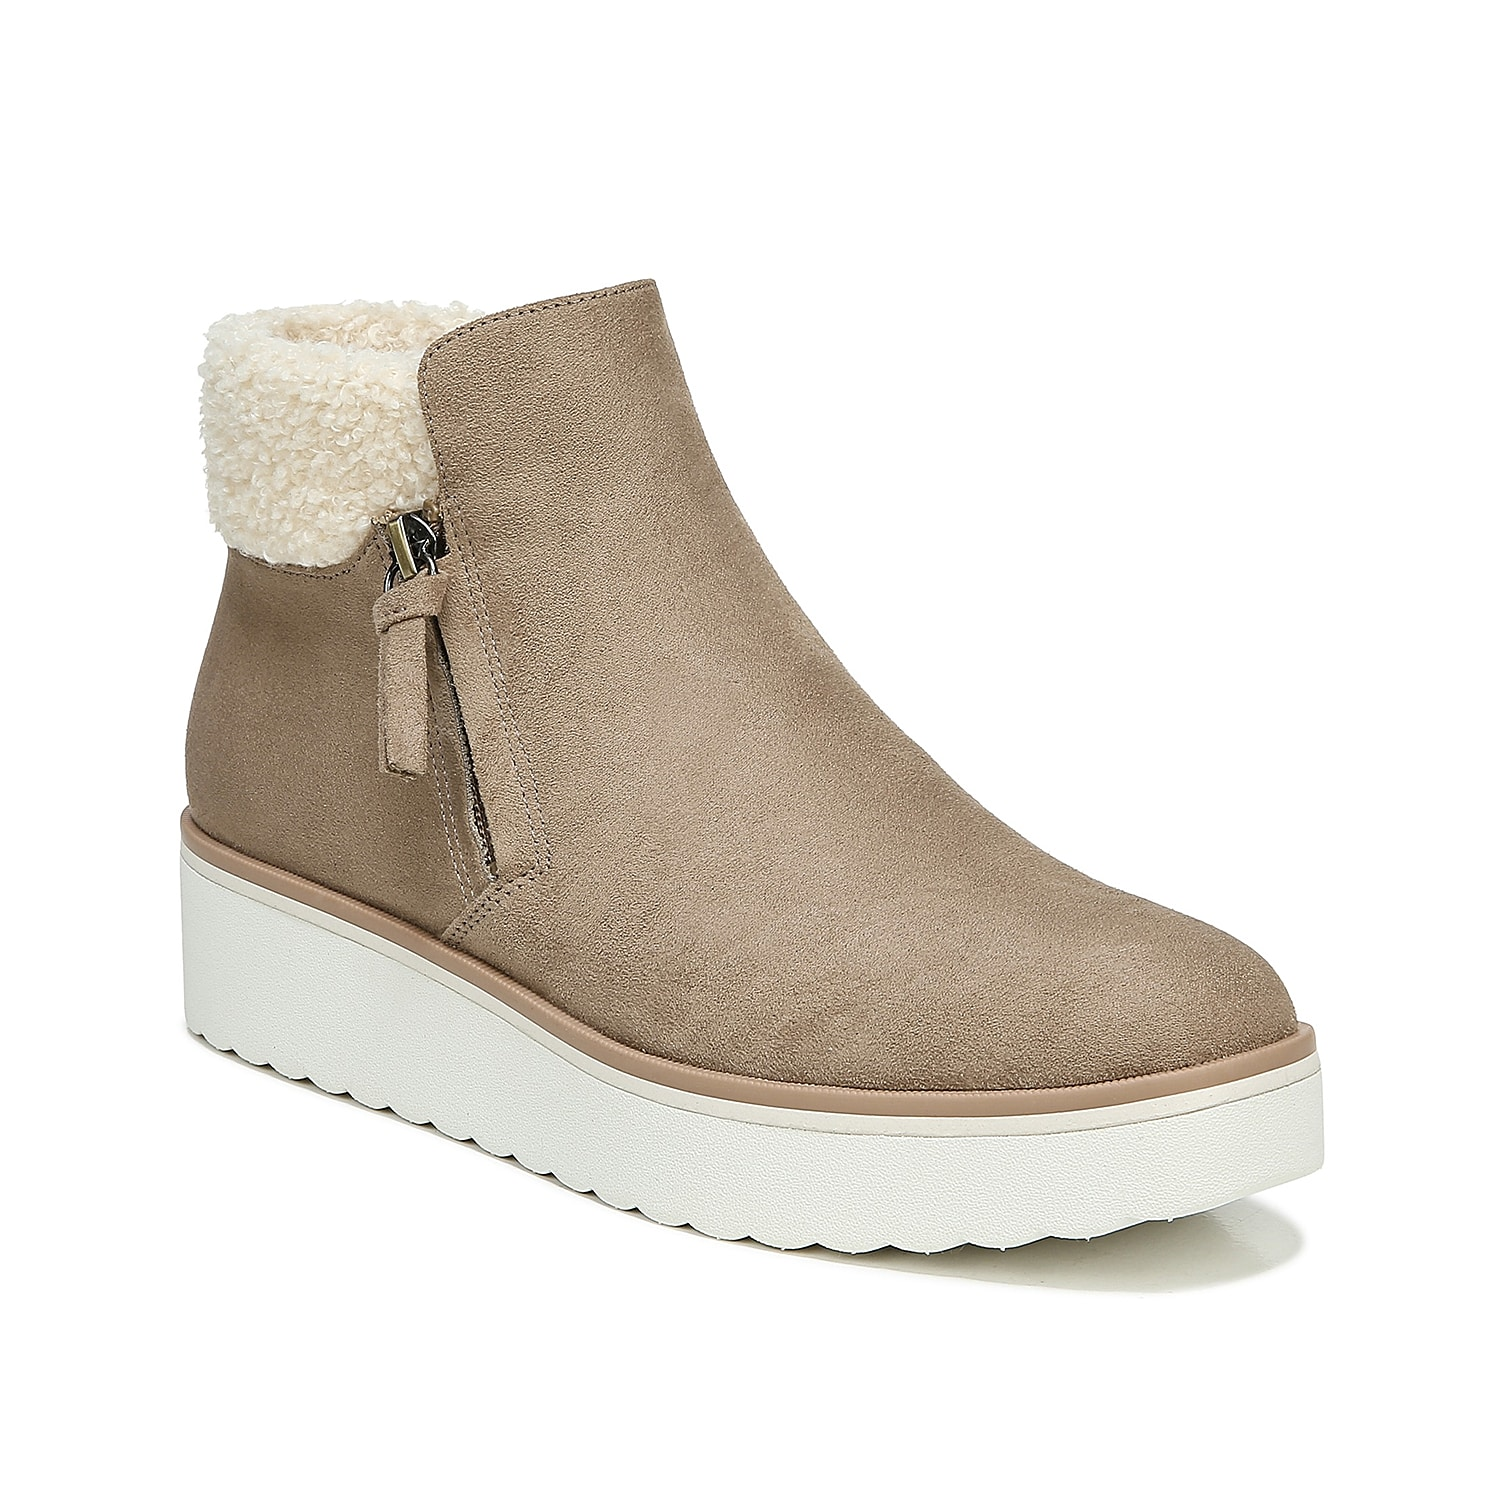 The Dr. Scholl\\\'s Lunar sneaker boot gives you that posh sporty profile you\\\'ve always wanted. Contrasted by an interesting shearling collar, this boot\\\'s eco-friendly upper has a comfortable yet unique outside zipper for convenient access.Click here for Boot Measuring Guide.